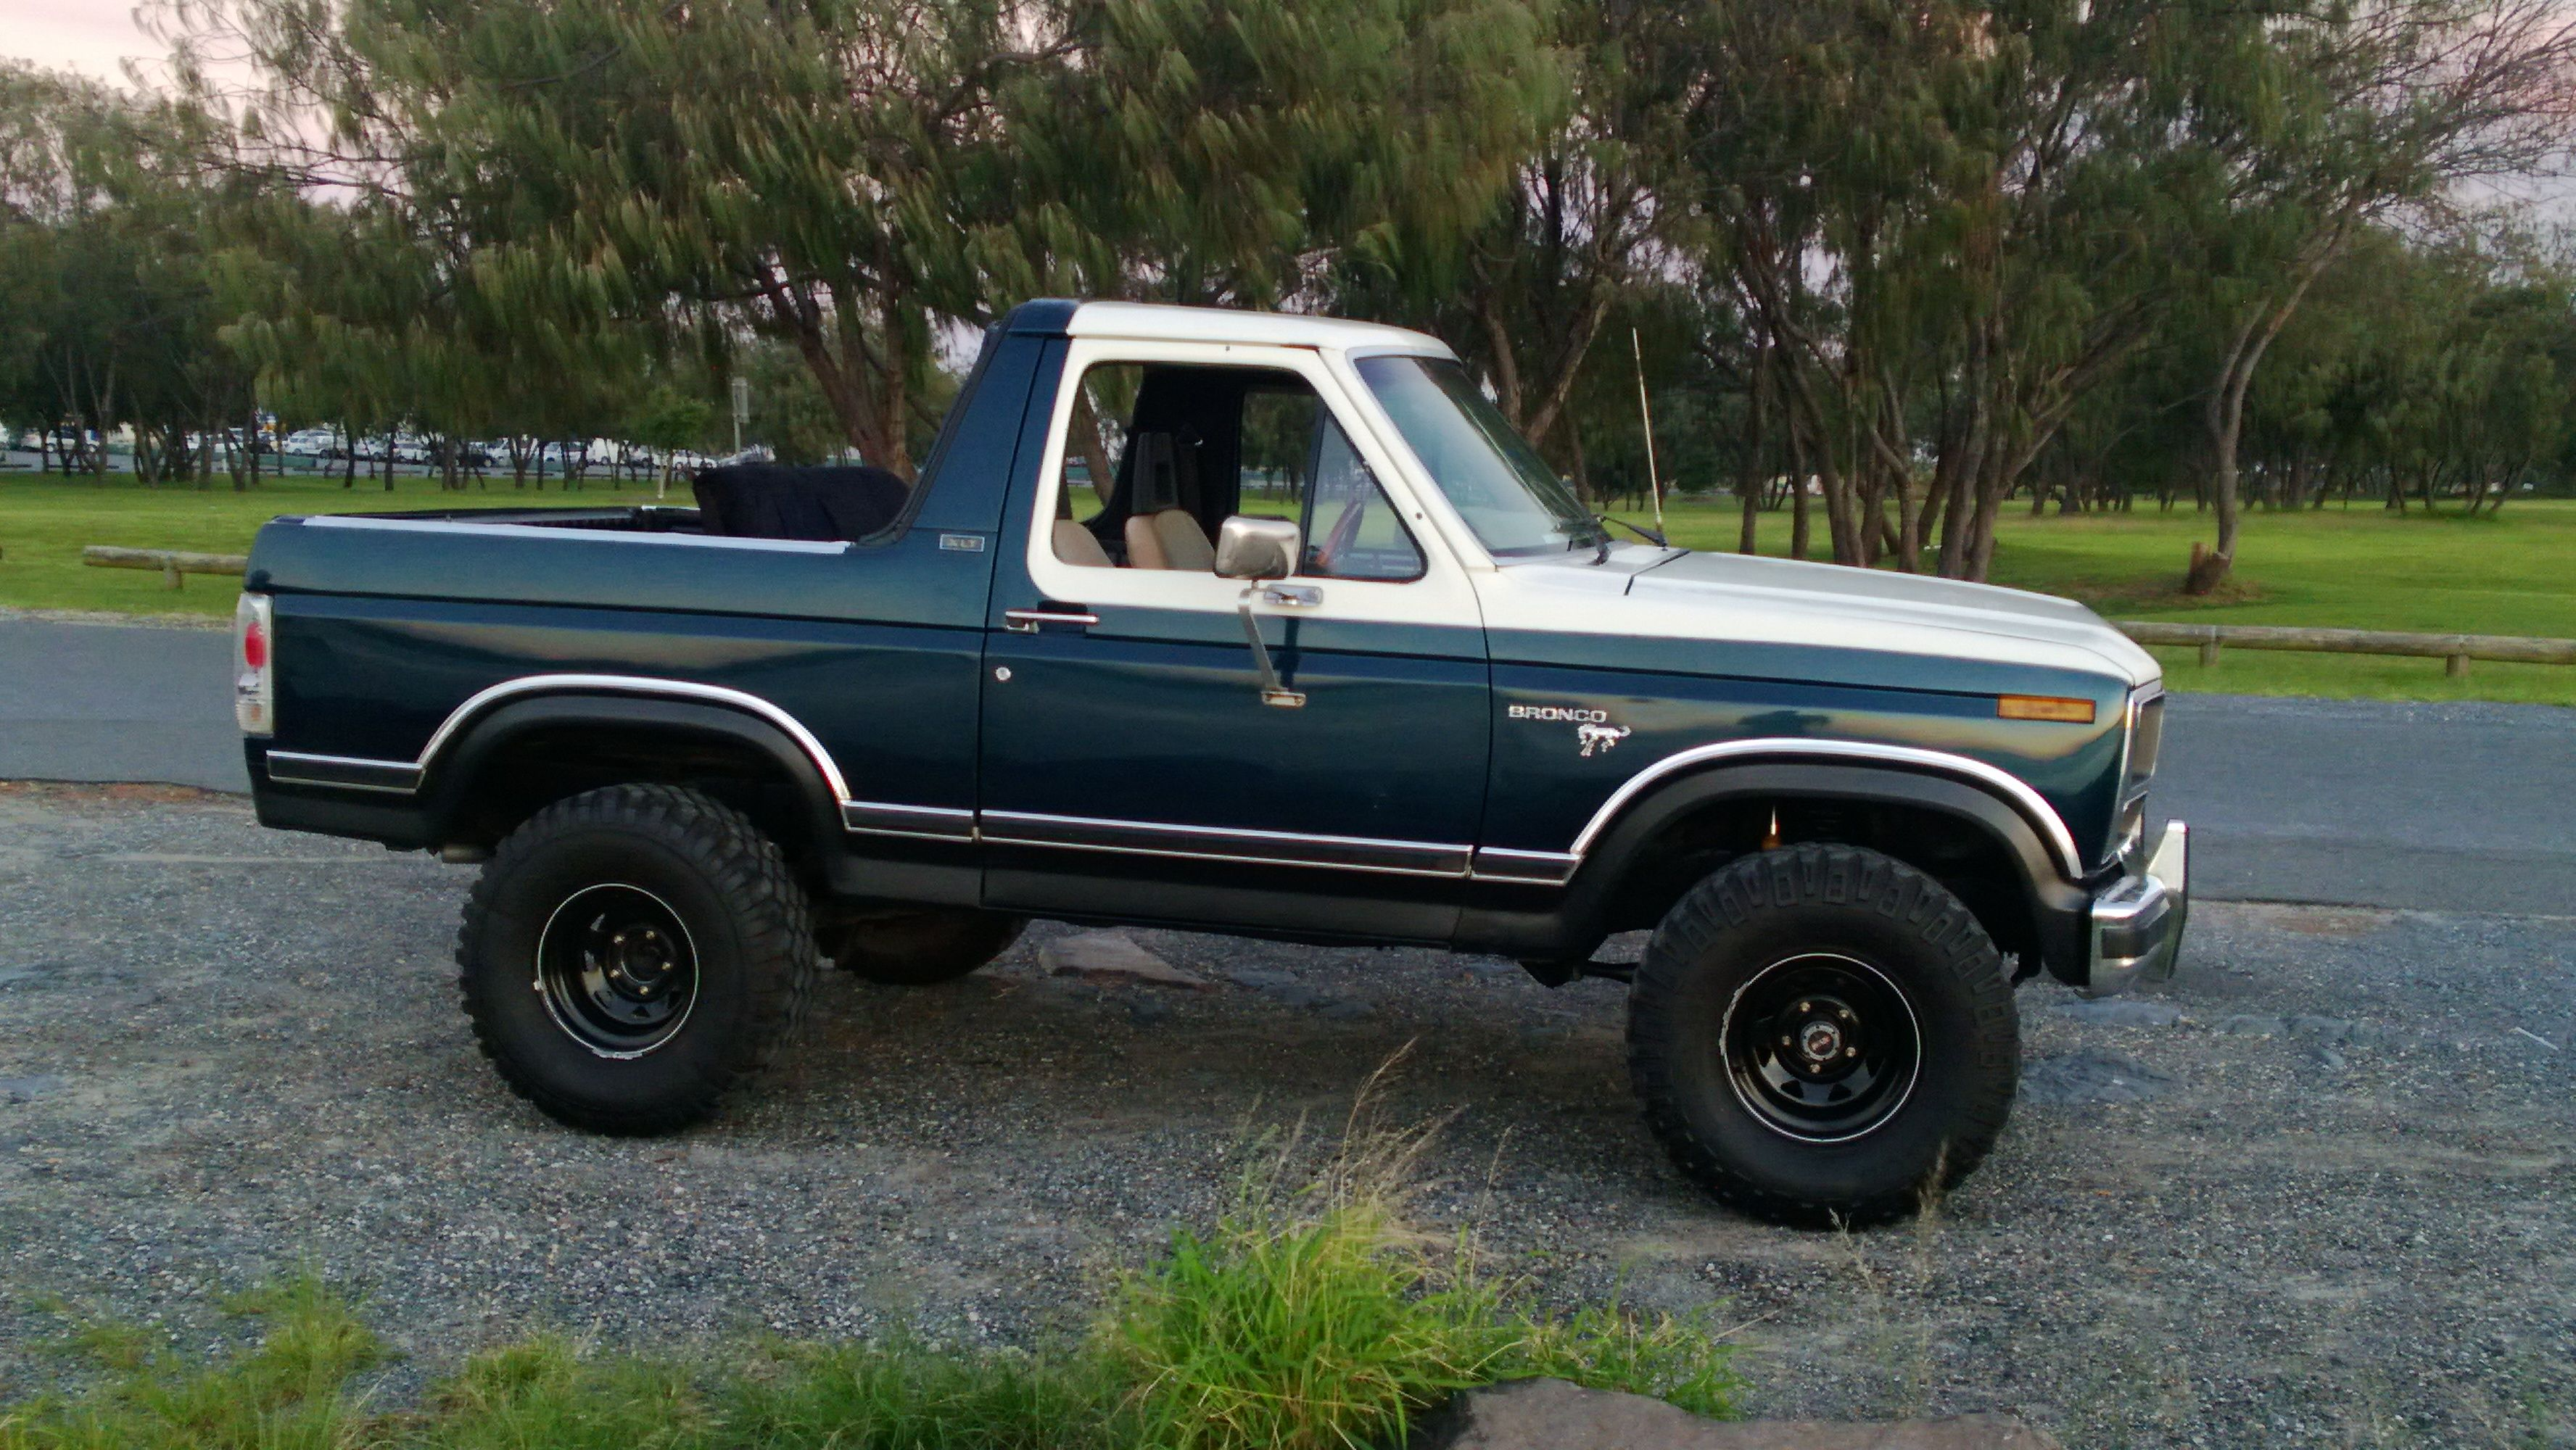 1981 Ford Bronco The Ford Bronco Is A Sport Utility Vehicle That Was Produced From 1966 To 1996 With Five Distinct Generations Ford Bronco Ford Suv Bronco